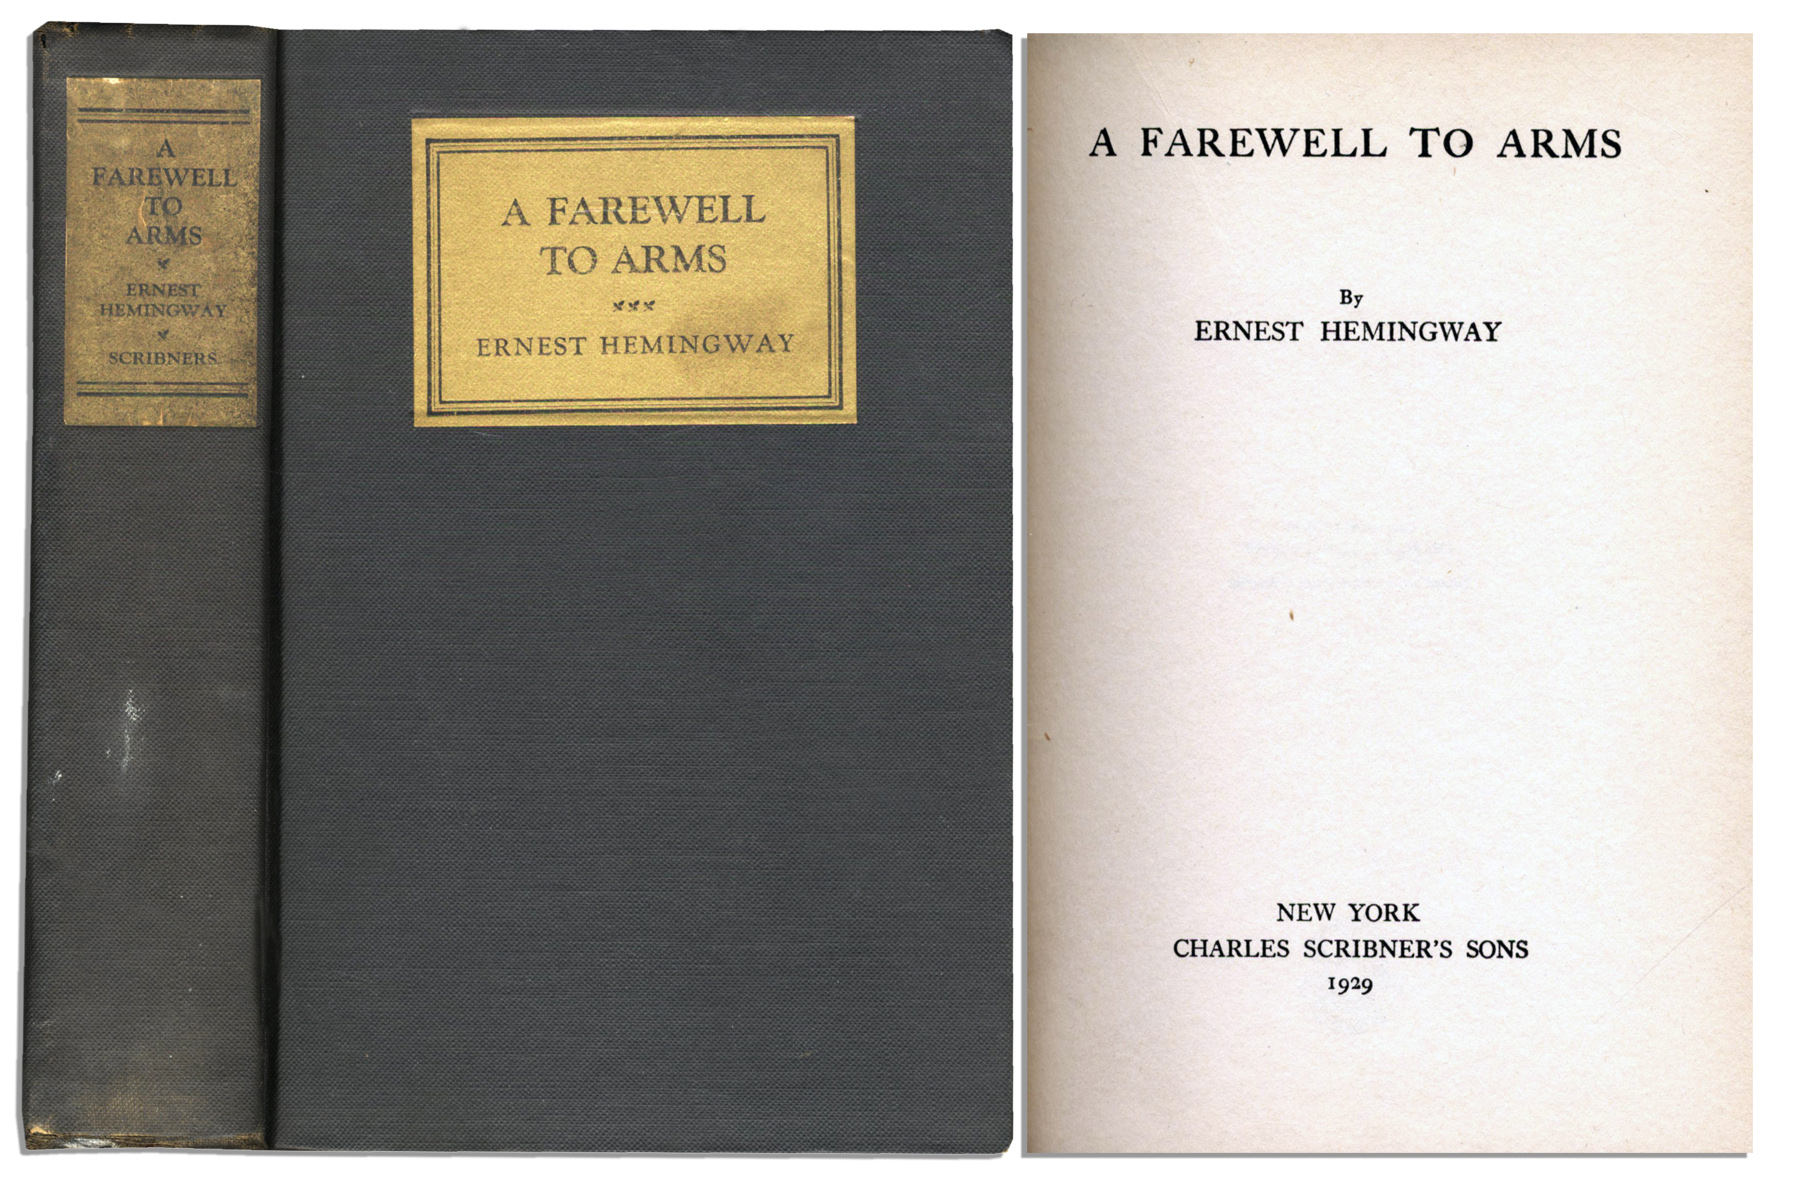 the destruction caused by war in a farewell to arms by ernest hemingway On pages 50-51, in chapter 9 of ernest hemingway's a farewell to arms, there   regarding the realities of war and the extent to which so many are destroyed in.